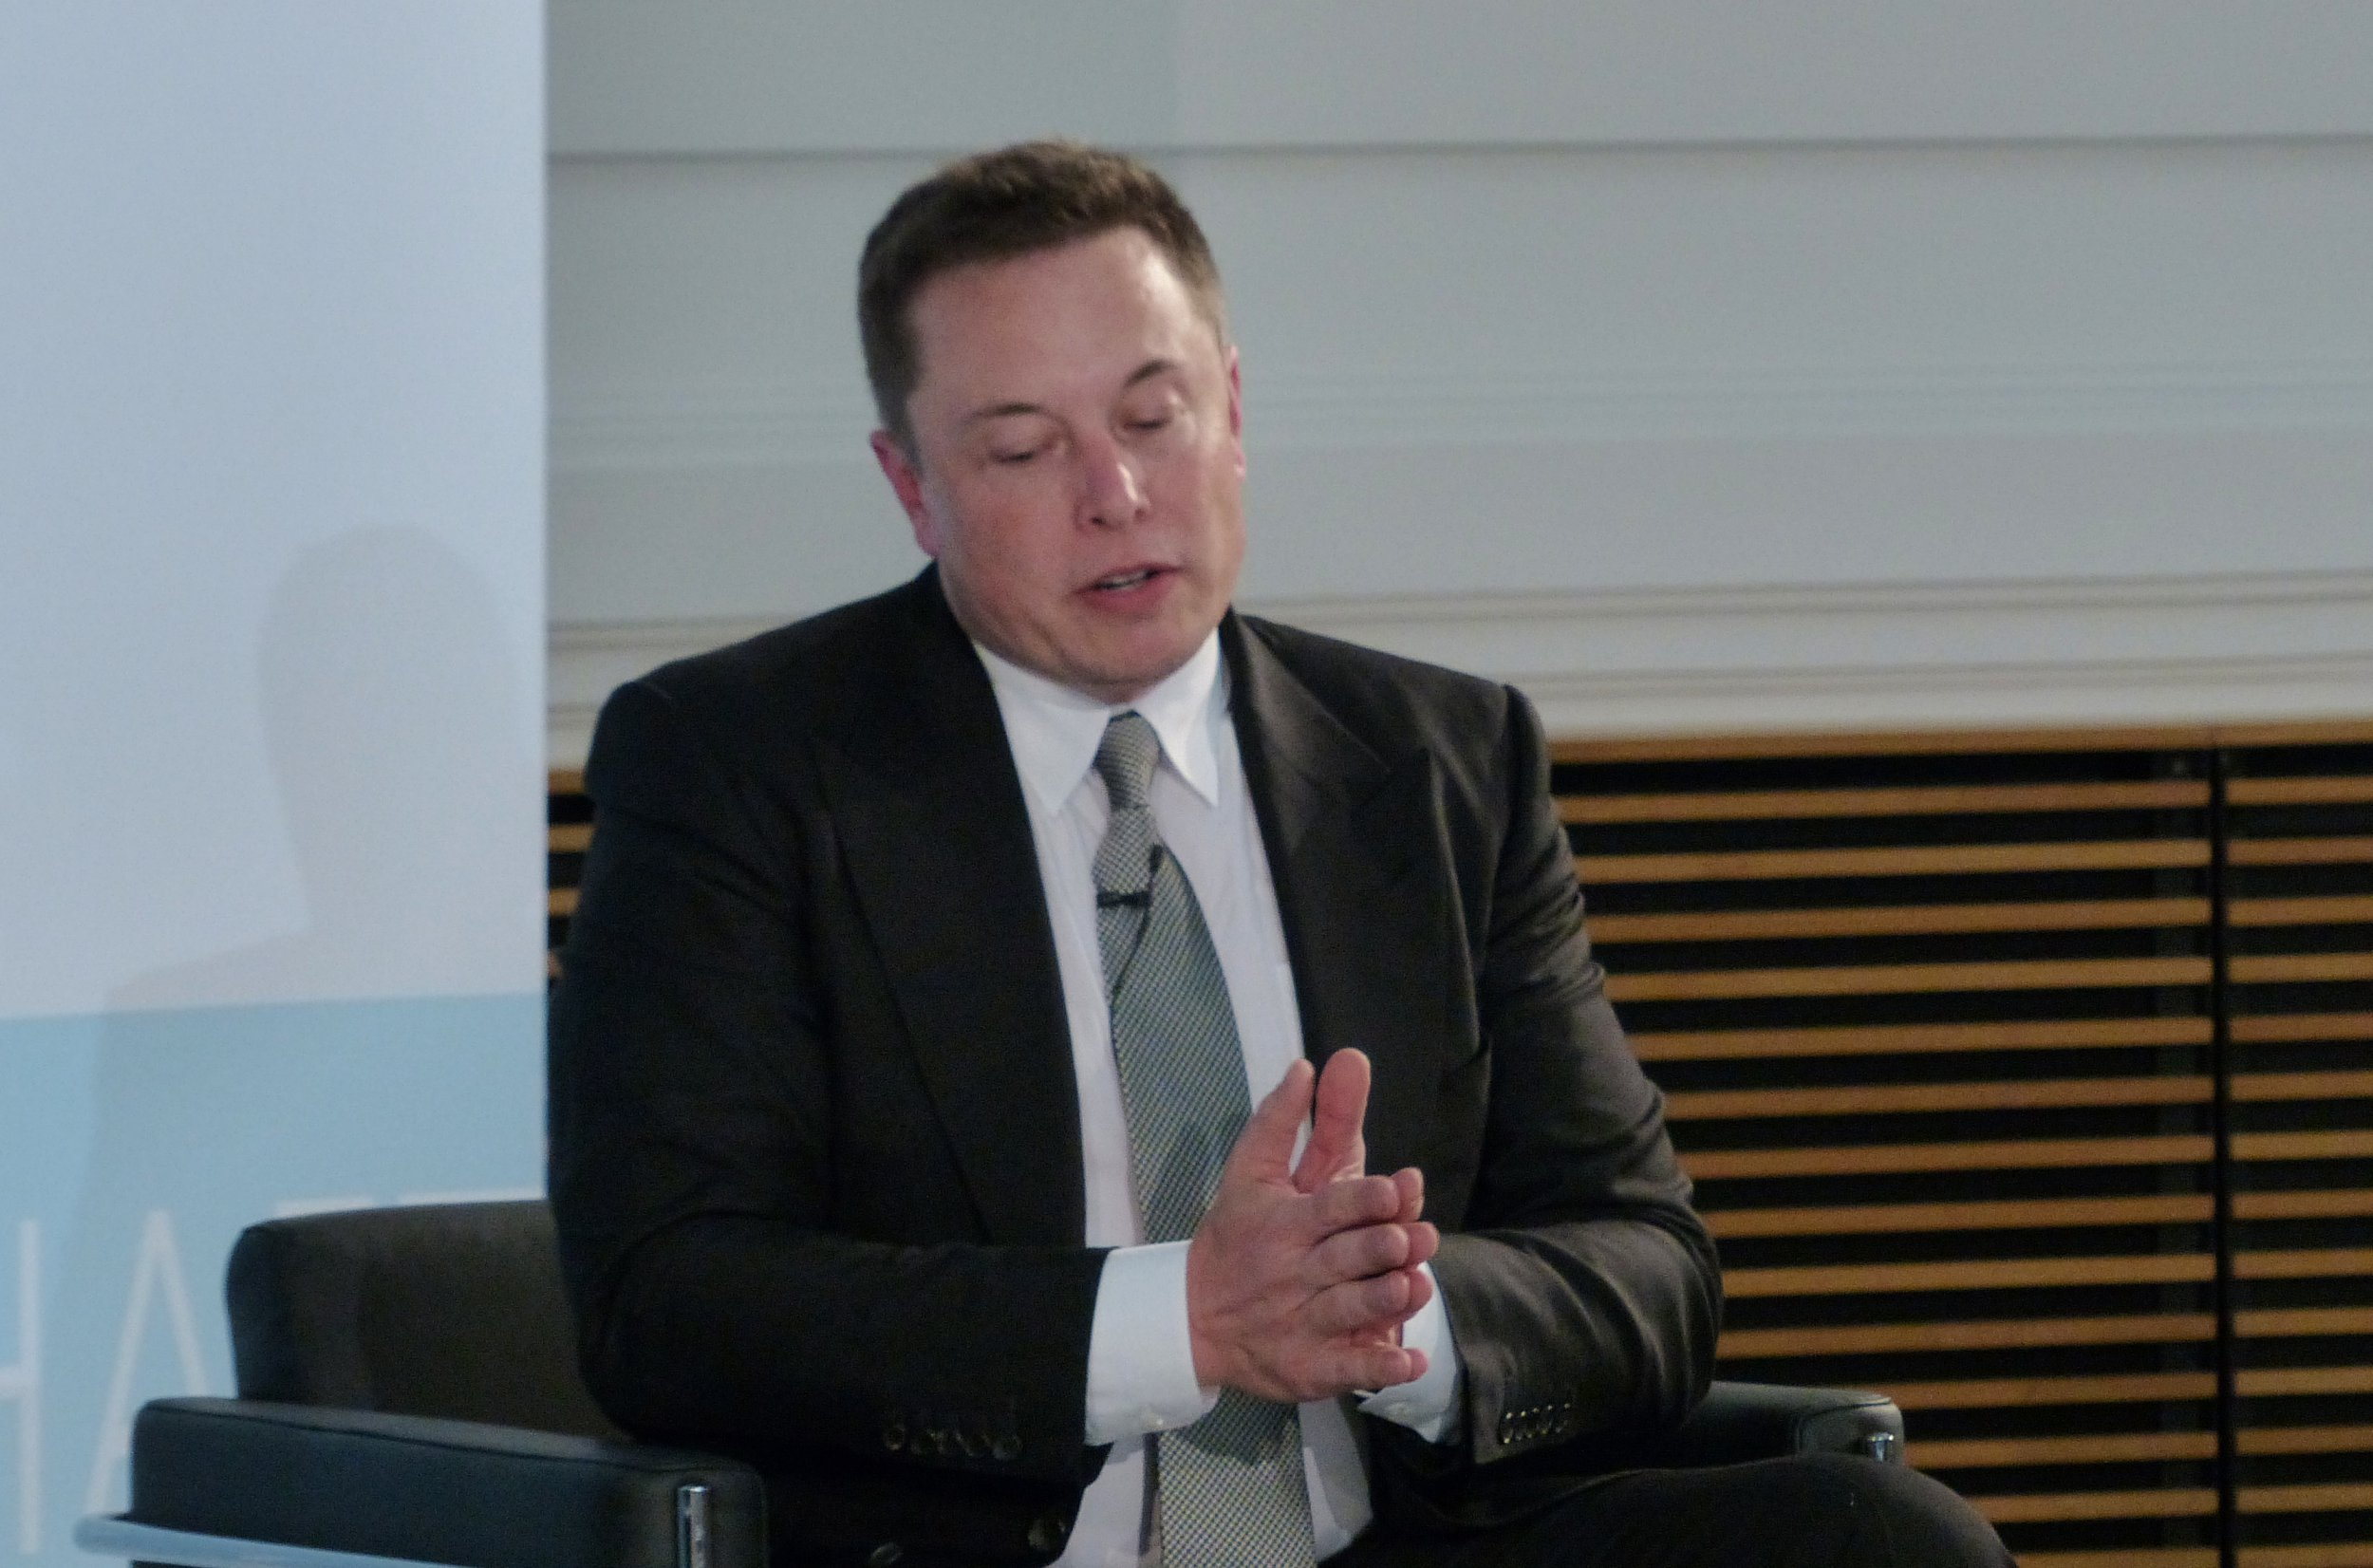 Elon Musk's 'ongoing public belligerence' could get him in trouble, analysts claim